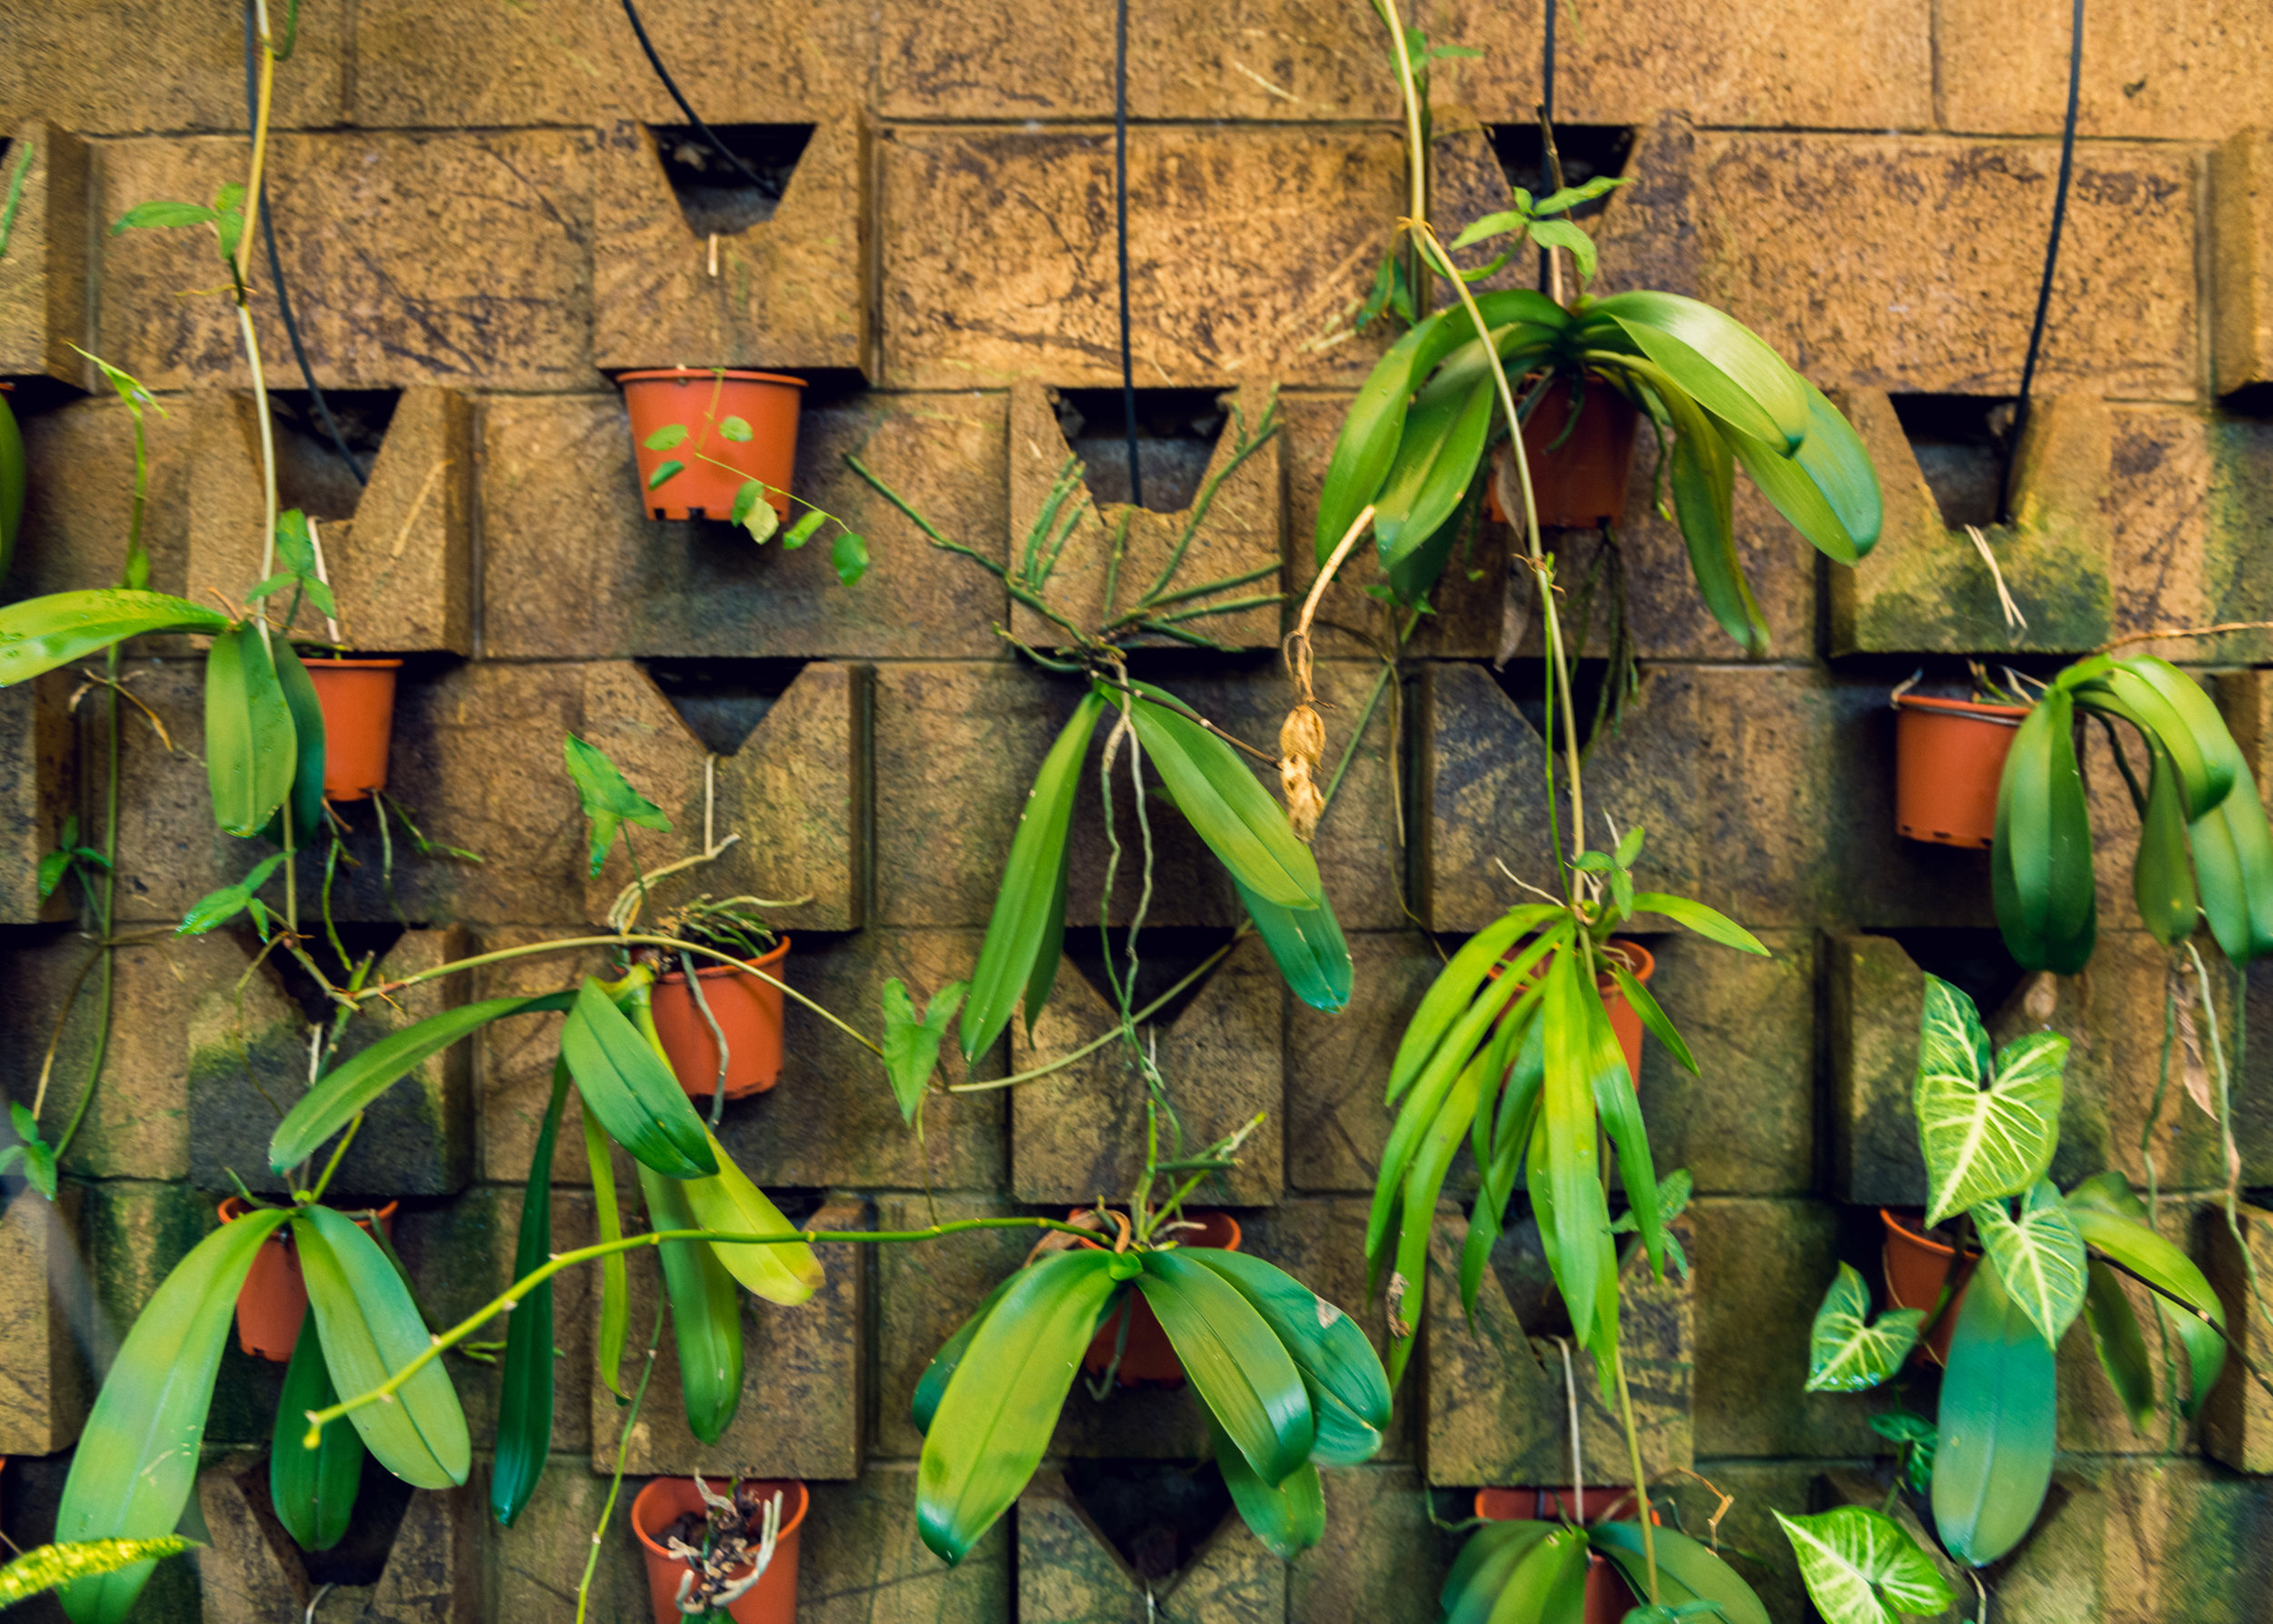 """A small section of wall is lined with a versatile display fed by an inventive built-in watering system. In years past it flourished, filled to the brim with flowering orchids, and was quite a spectacle. There was even a cover charge for those who came to take in the beauty. But alas, like many old world marvels reminiscent of """"Ripley's Believe It or Not"""" ventures this display was soon laid to waste by the charms of modern technology."""